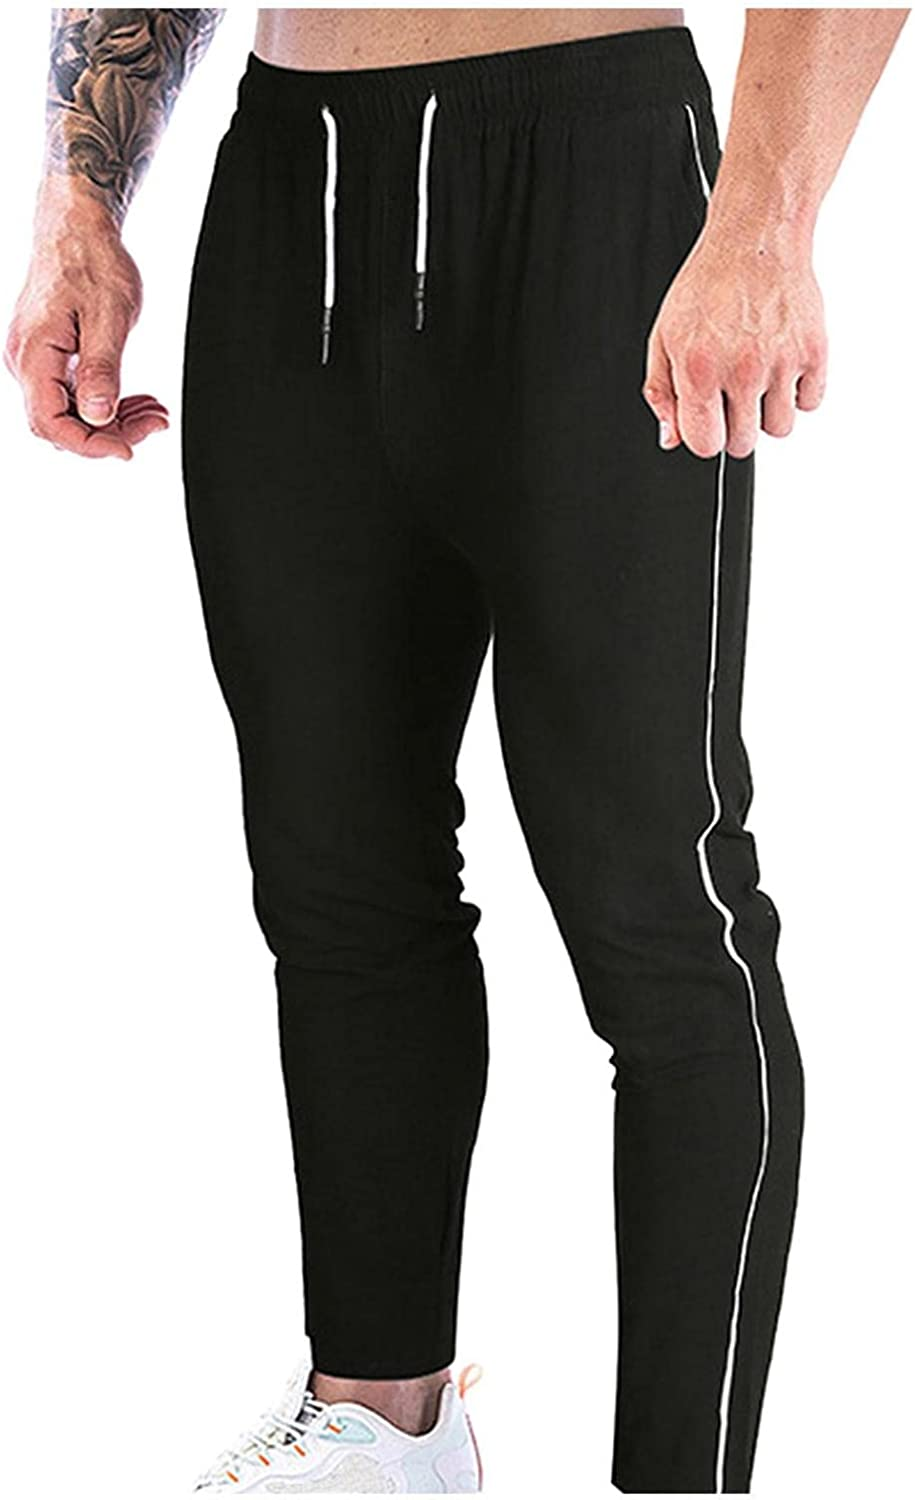 Beshion Sweatpants for Men Casual Joggers Athletic Yoga Pants Mid-Waist Slim Fit Lightweight Workout Tapered Trousers